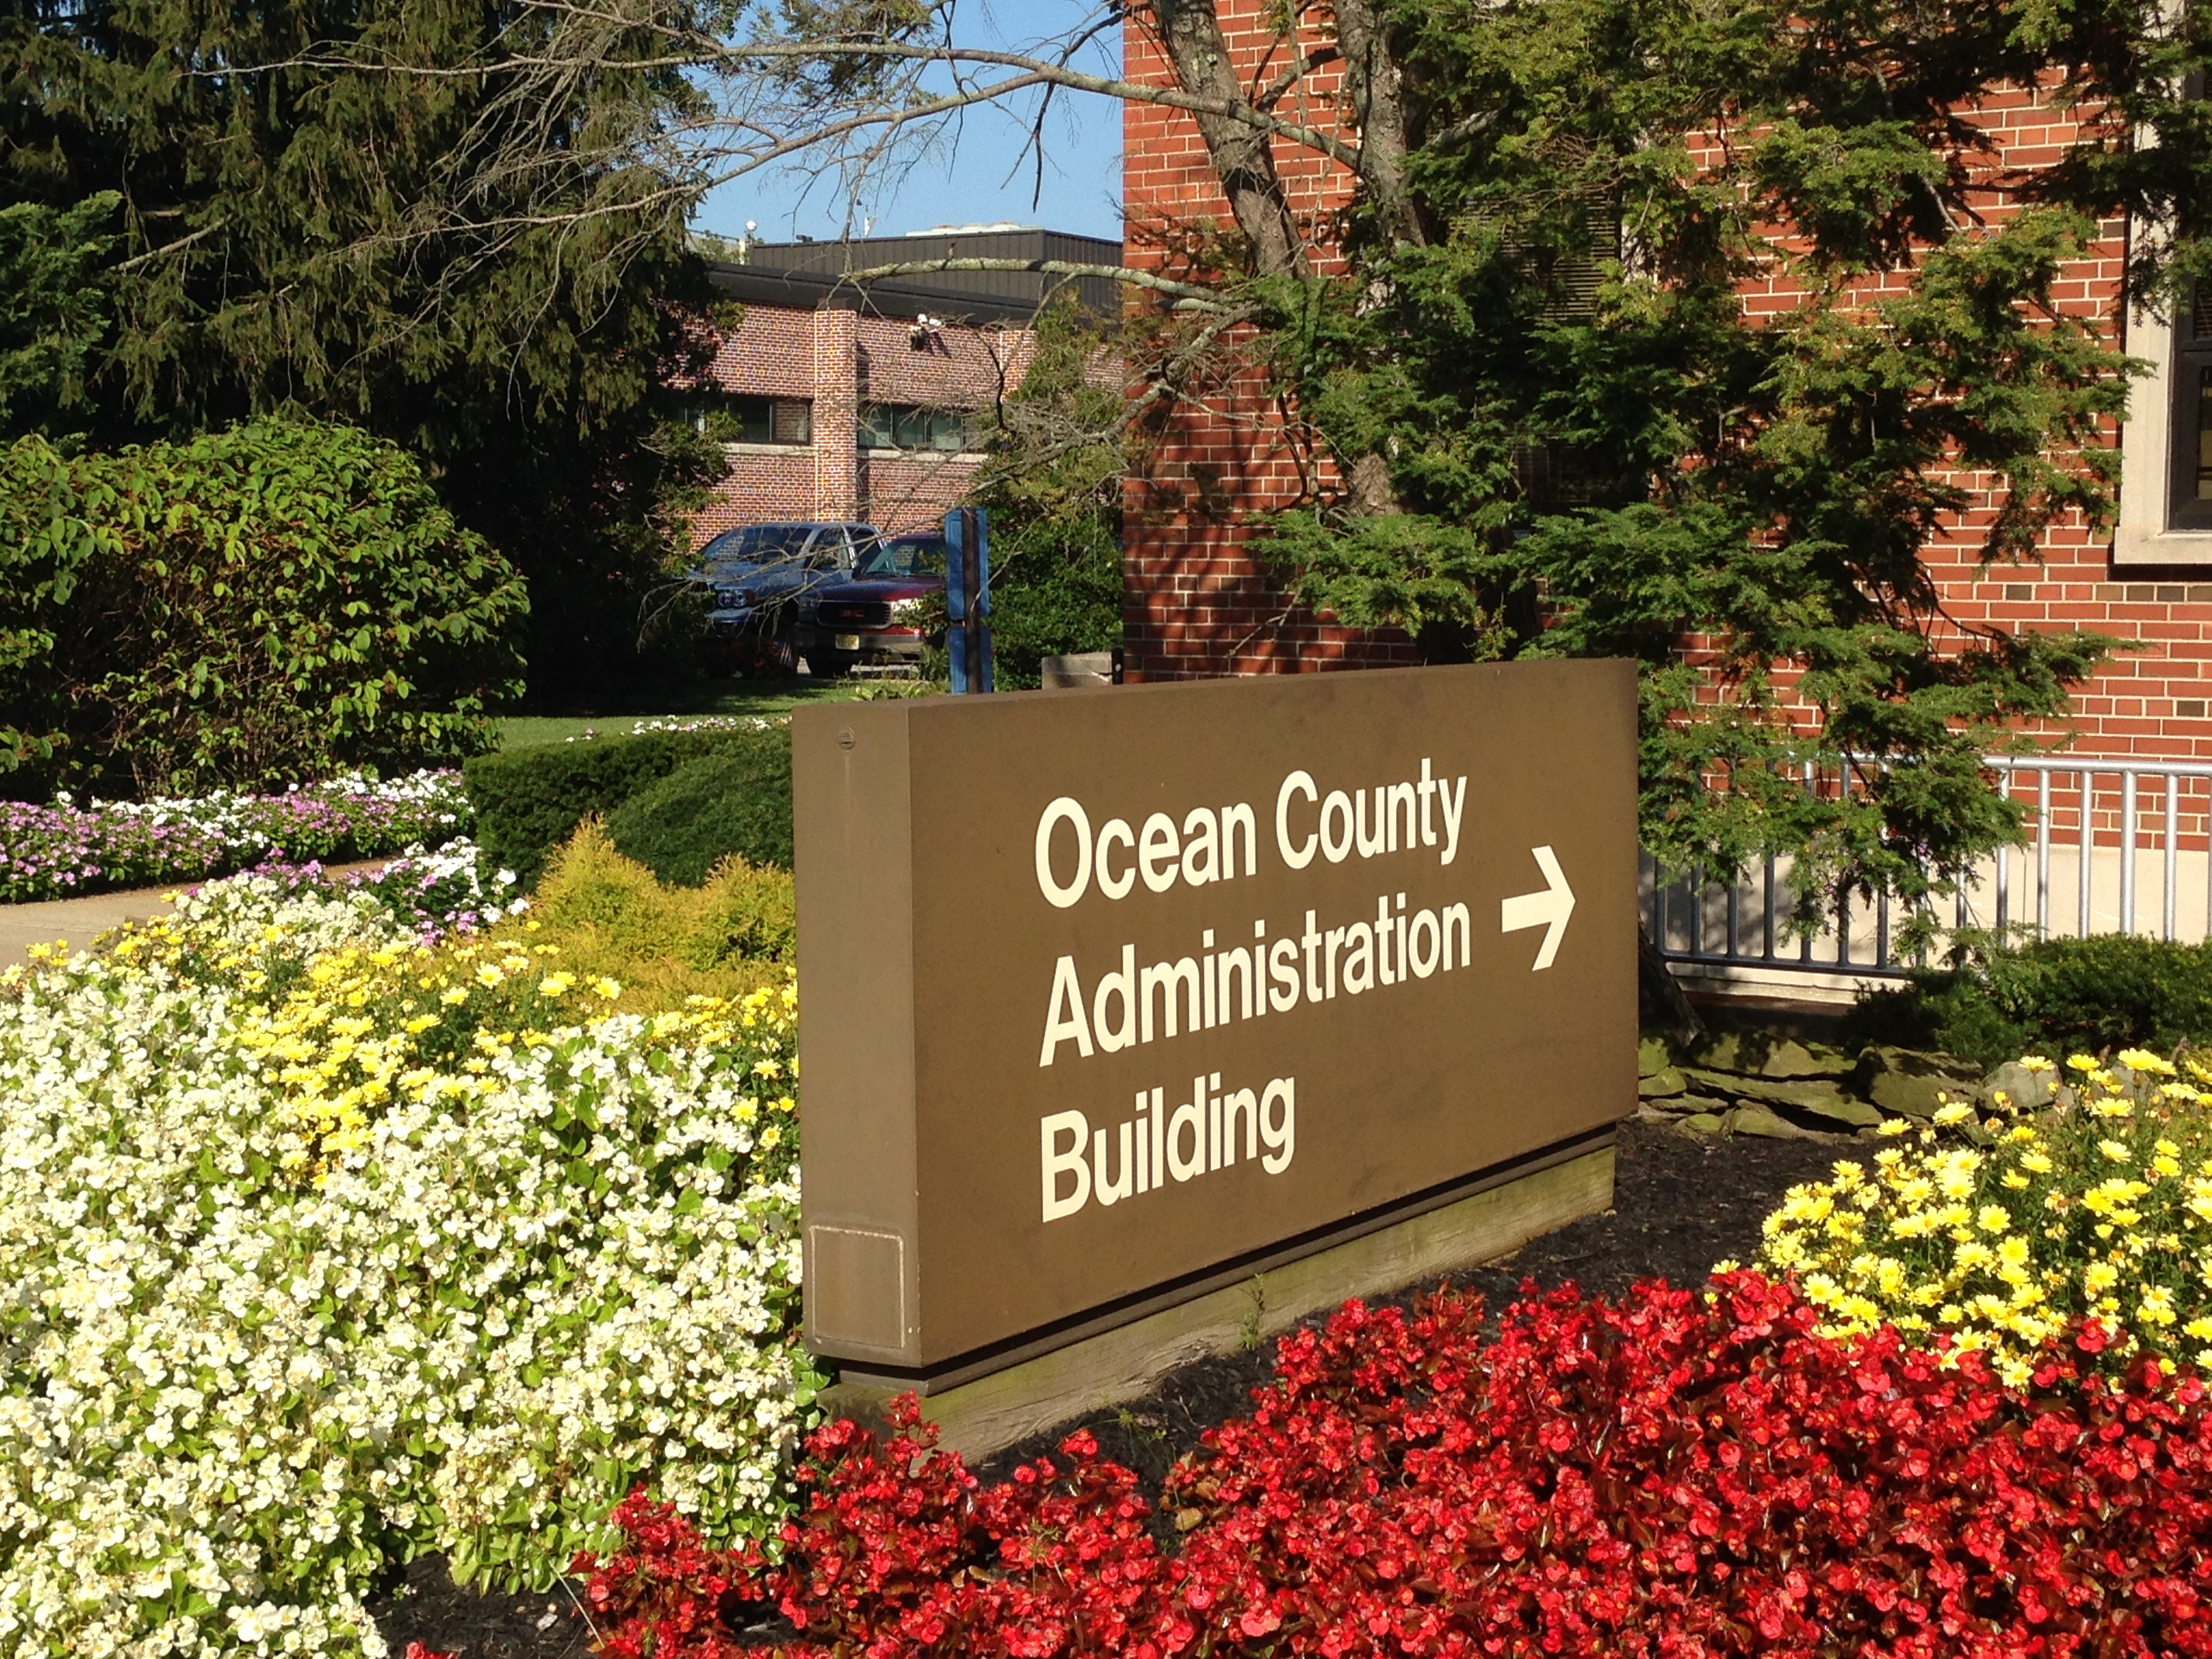 The Ocean County Administration Building, Toms River, N.J. (Photo: Daniel Nee)